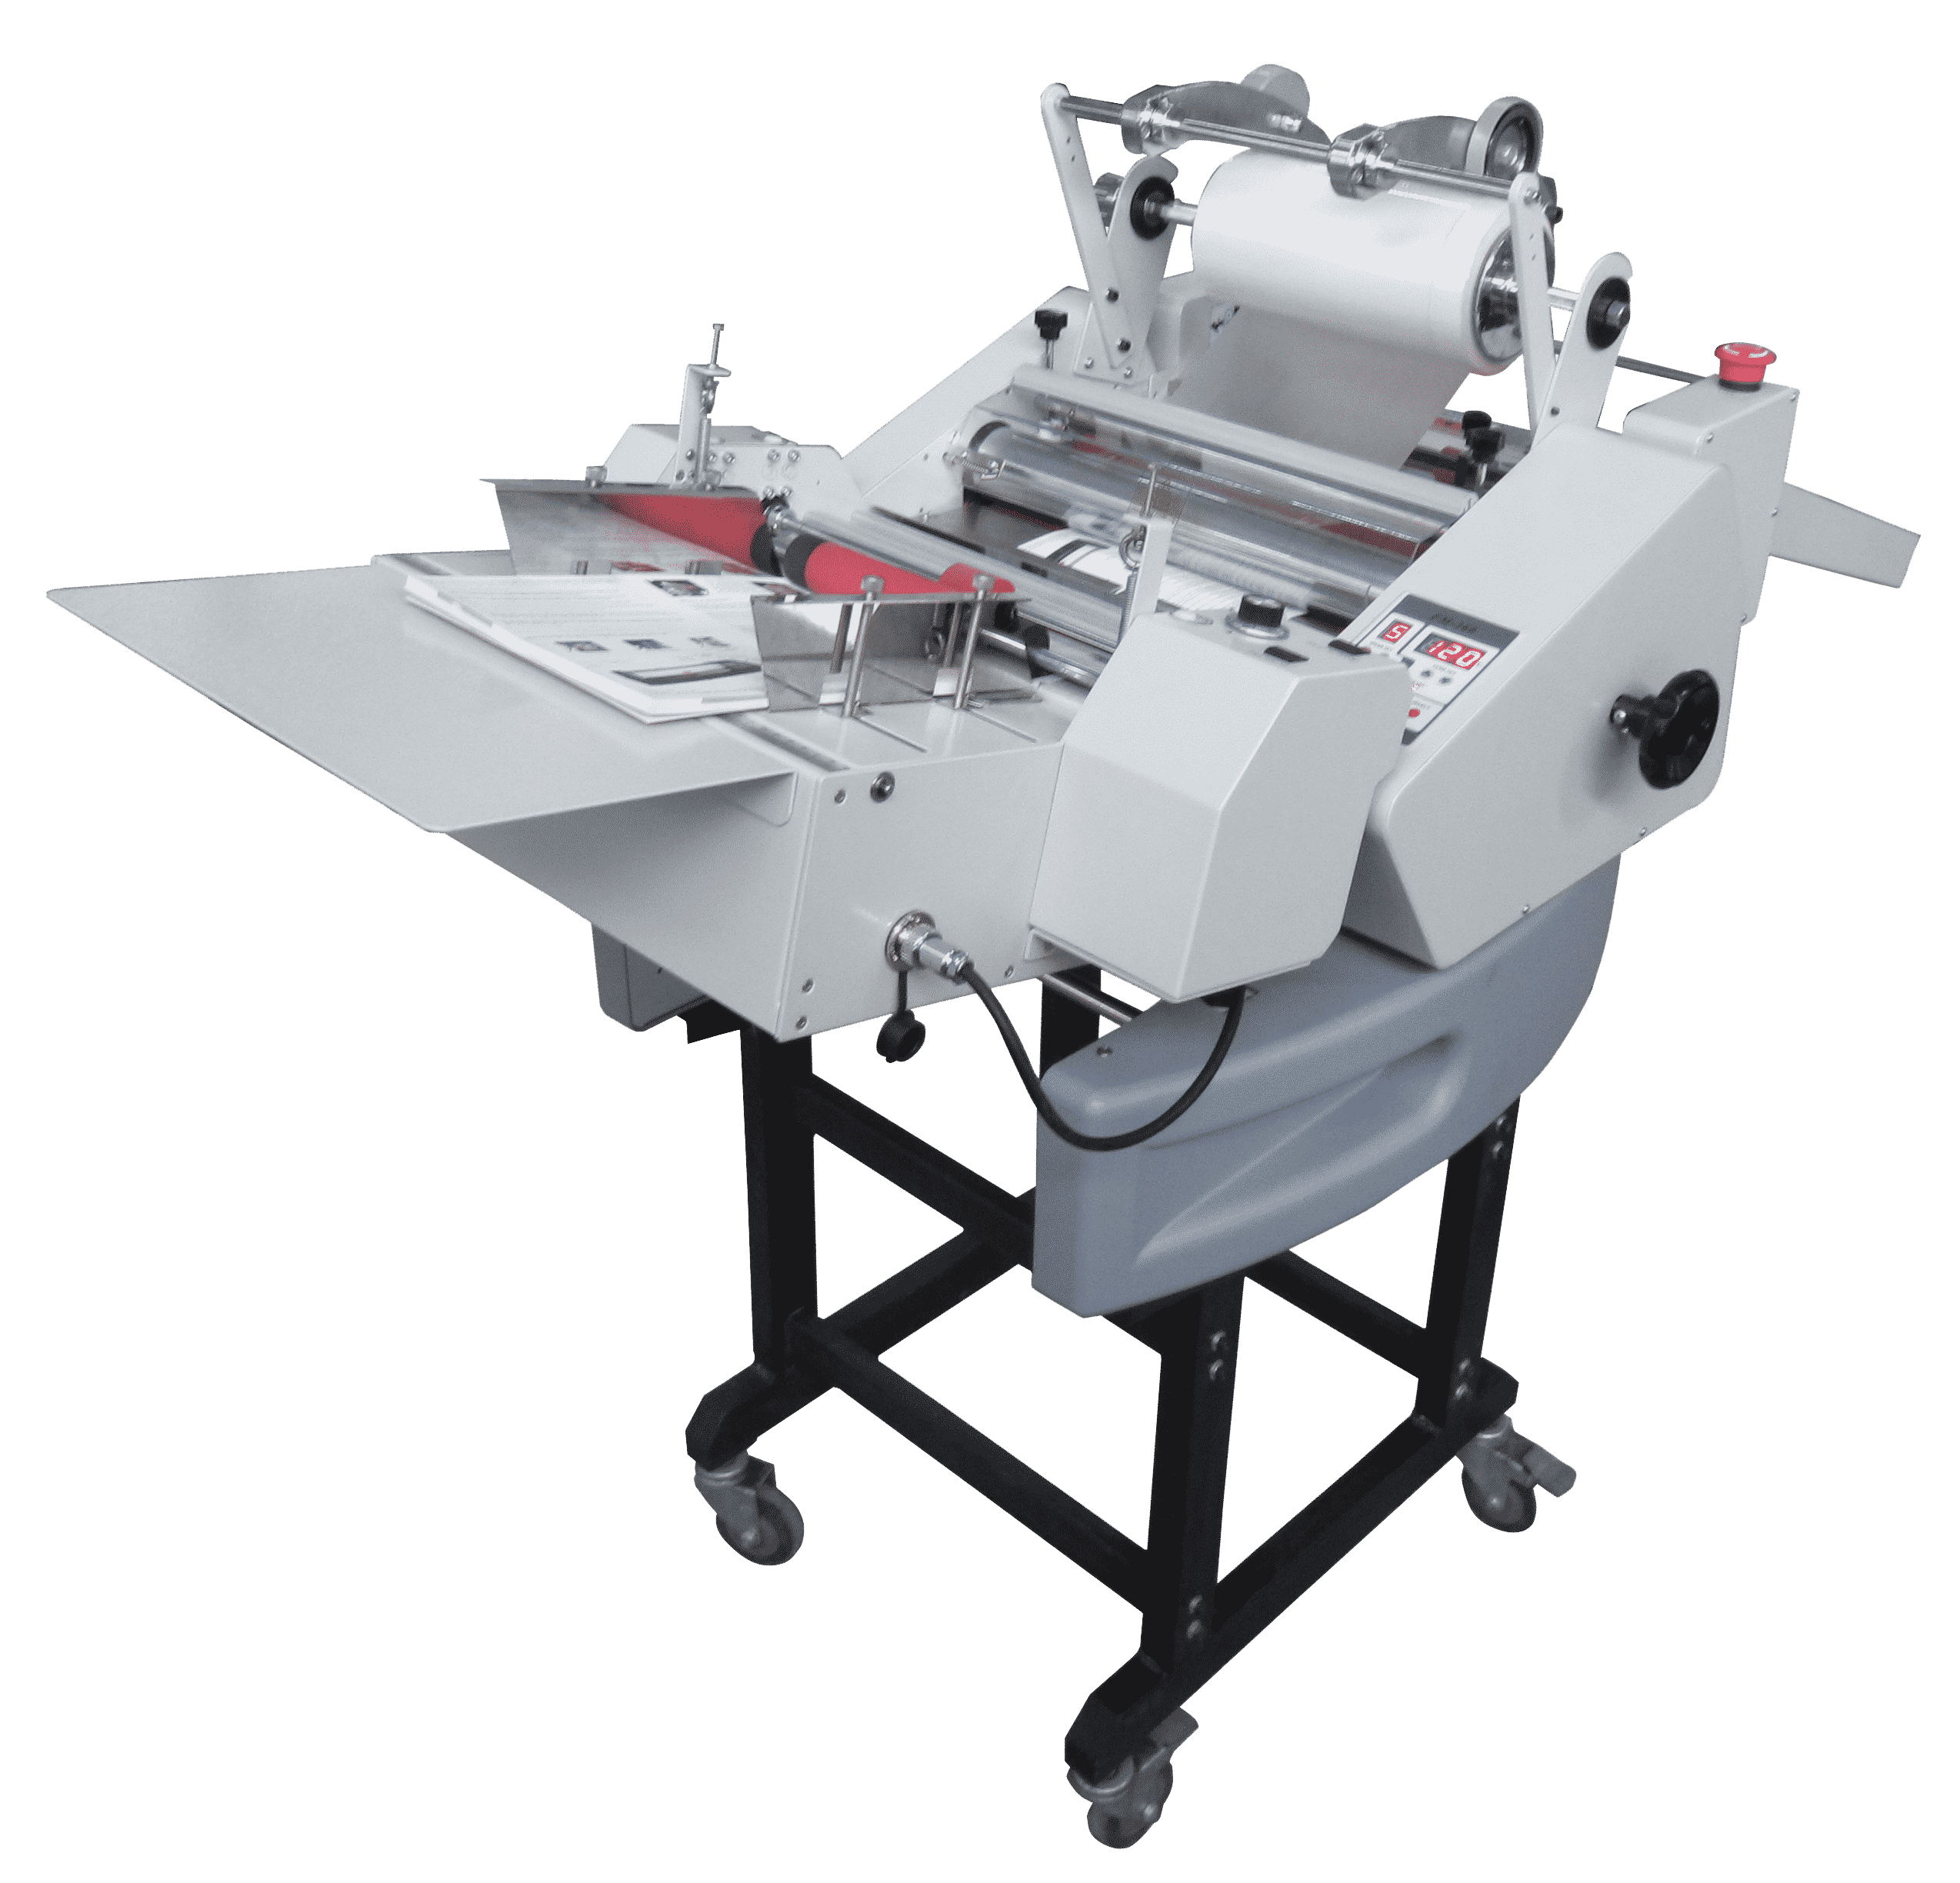 The Masterlam 13S | Roll Laminator for Single sided lamination. This automatic hot roll laminator creates single sided lamination without the hassle. Perfect for short to medium runs with an attached feeder and burster unit.